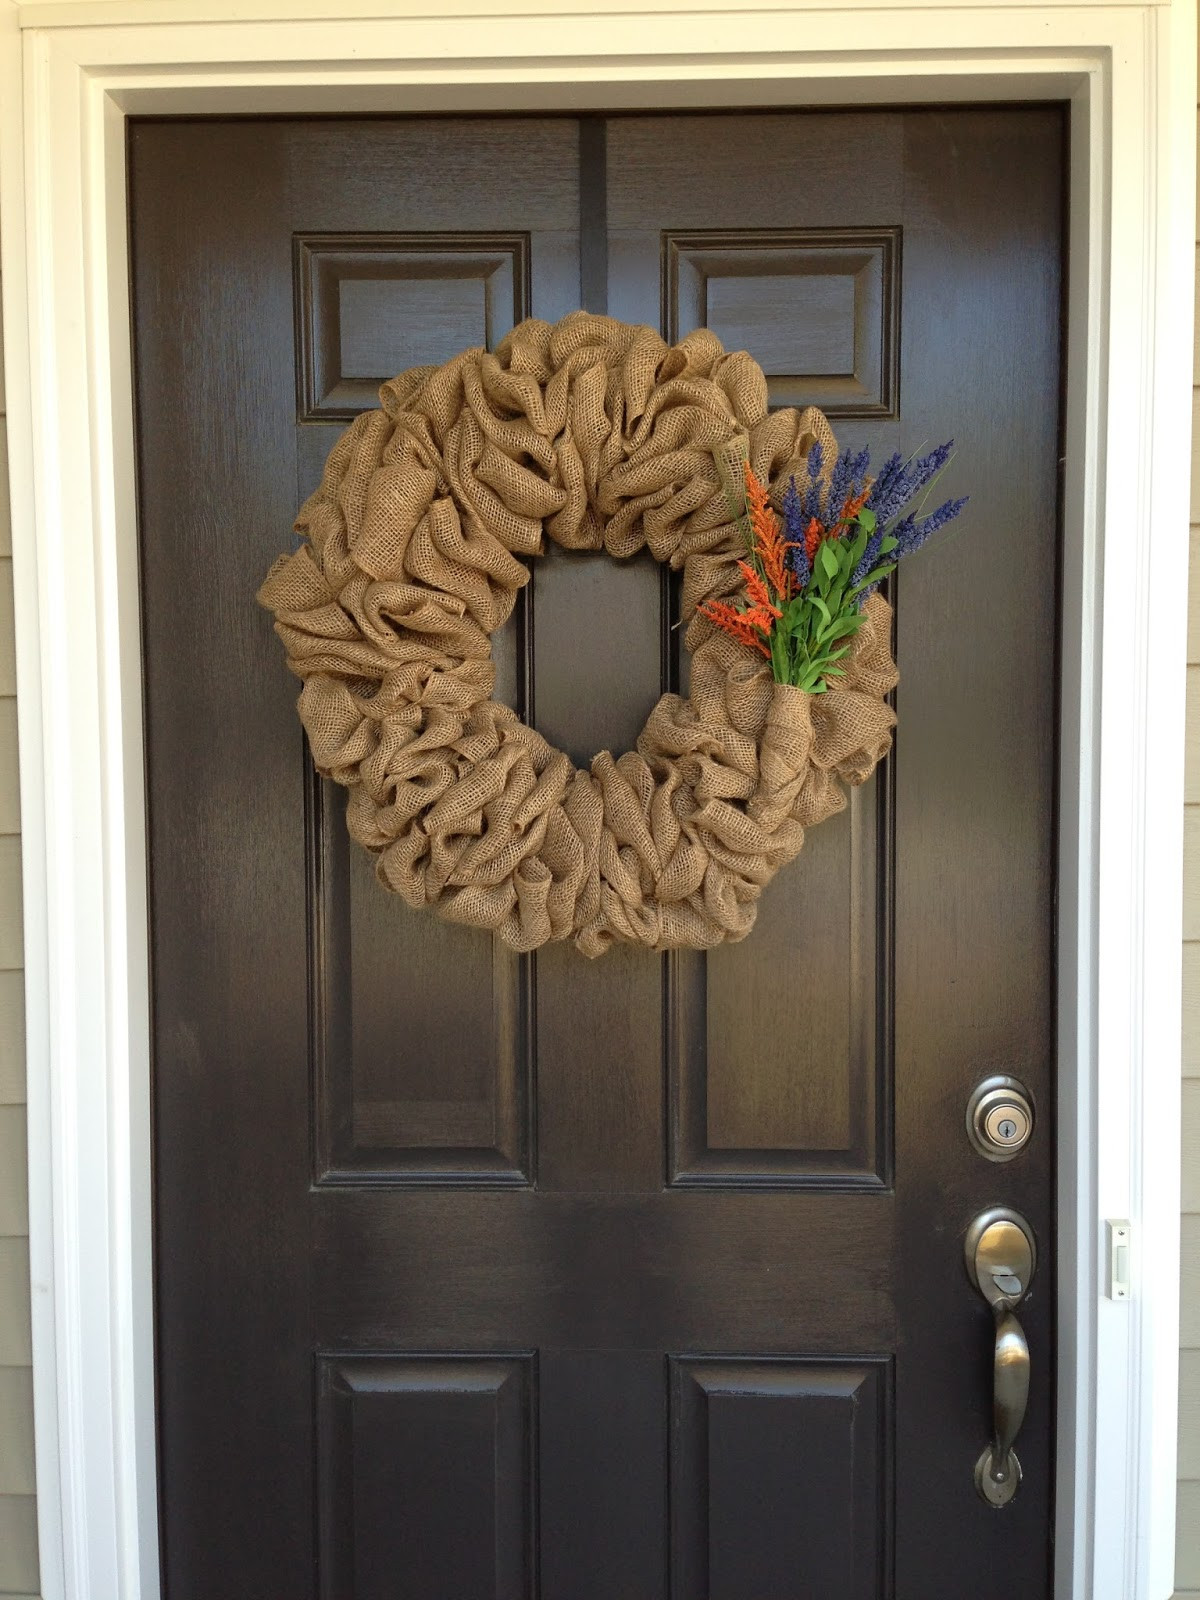 Best ideas about Burlap Wreath DIY . Save or Pin Little Lovely Leaders Burlap Wreath Now.